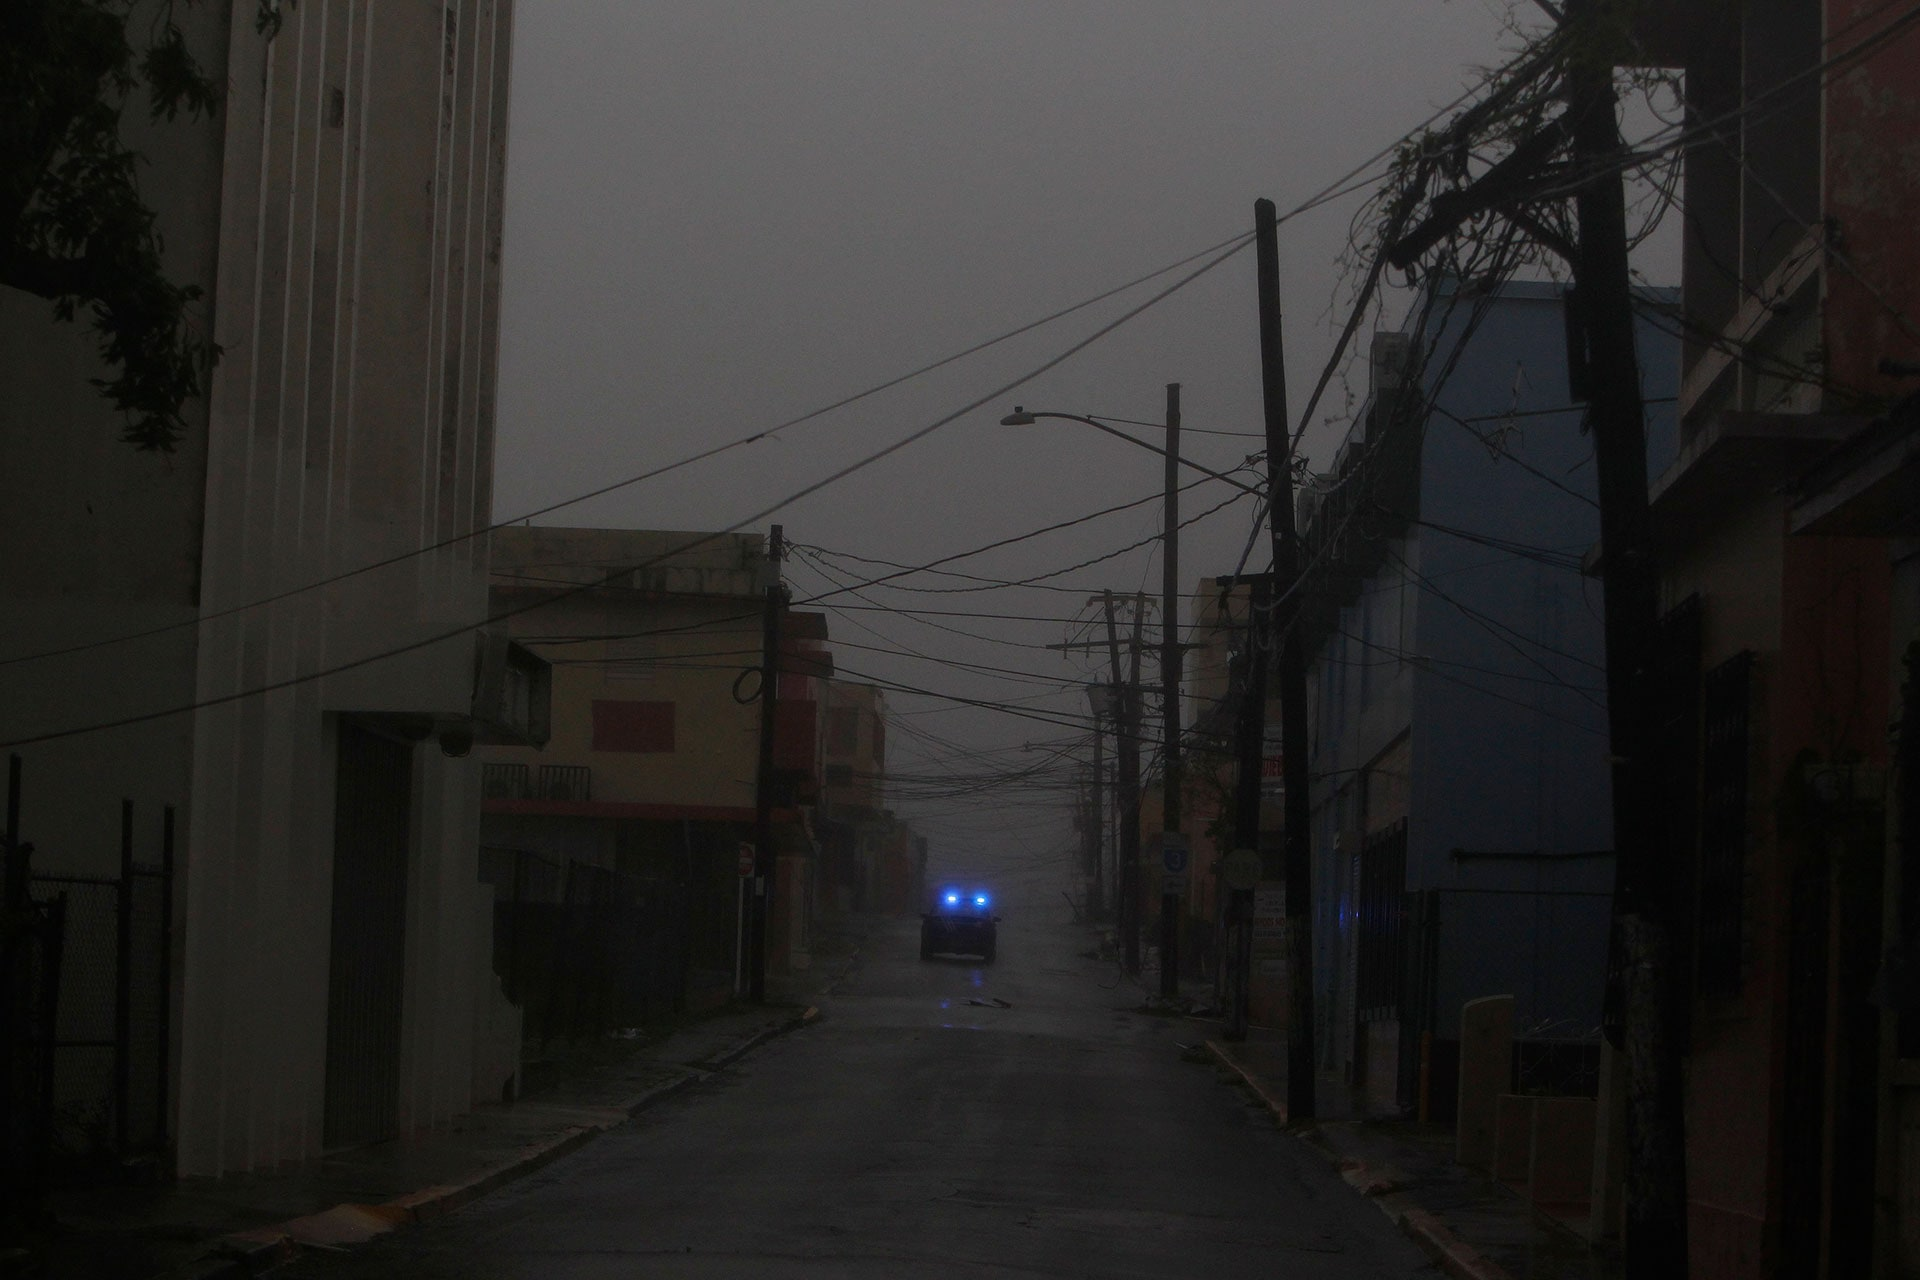 A police car patrols Fajardo, Puerto Rico, as Hurricane Maria hits